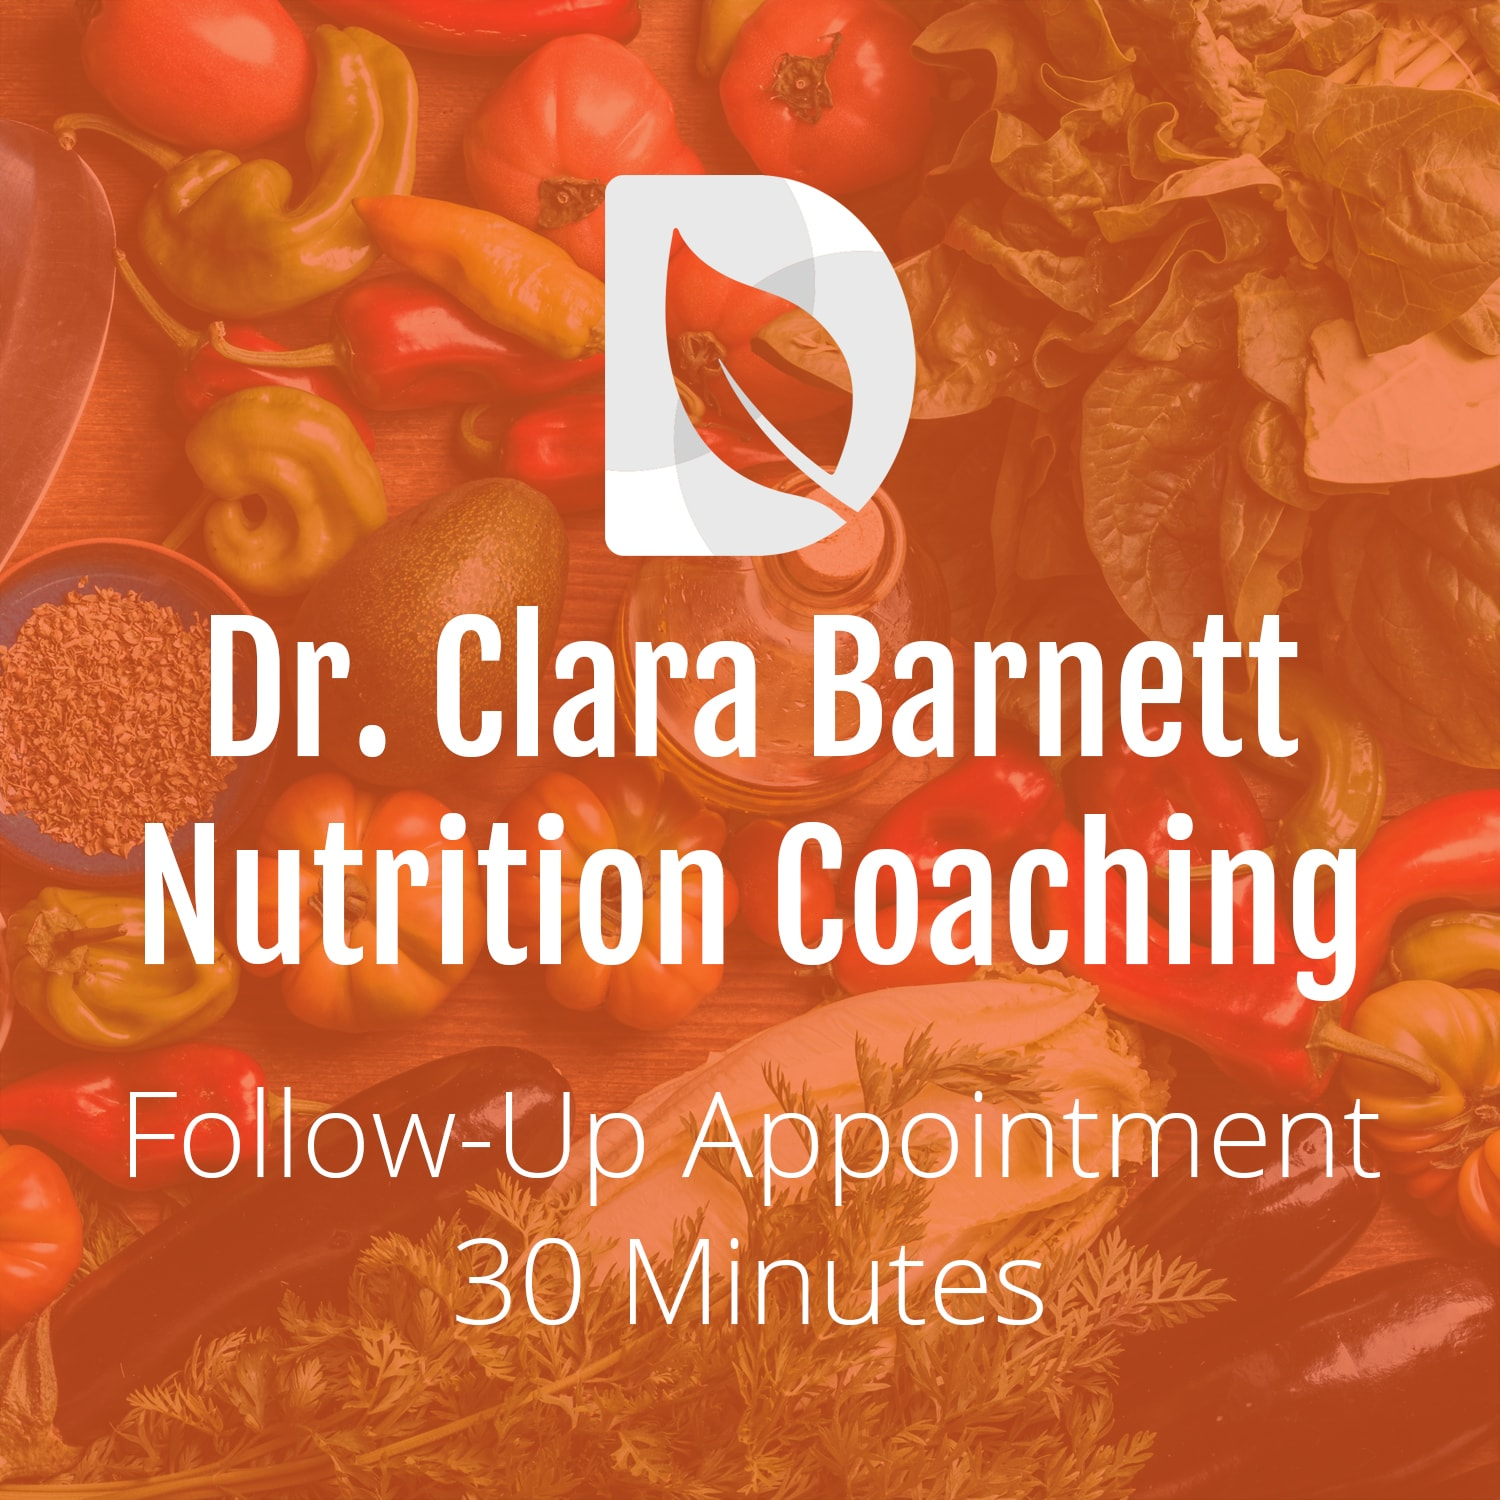 Nutrition Coaching: 30 Minute Follow-Up Appointment